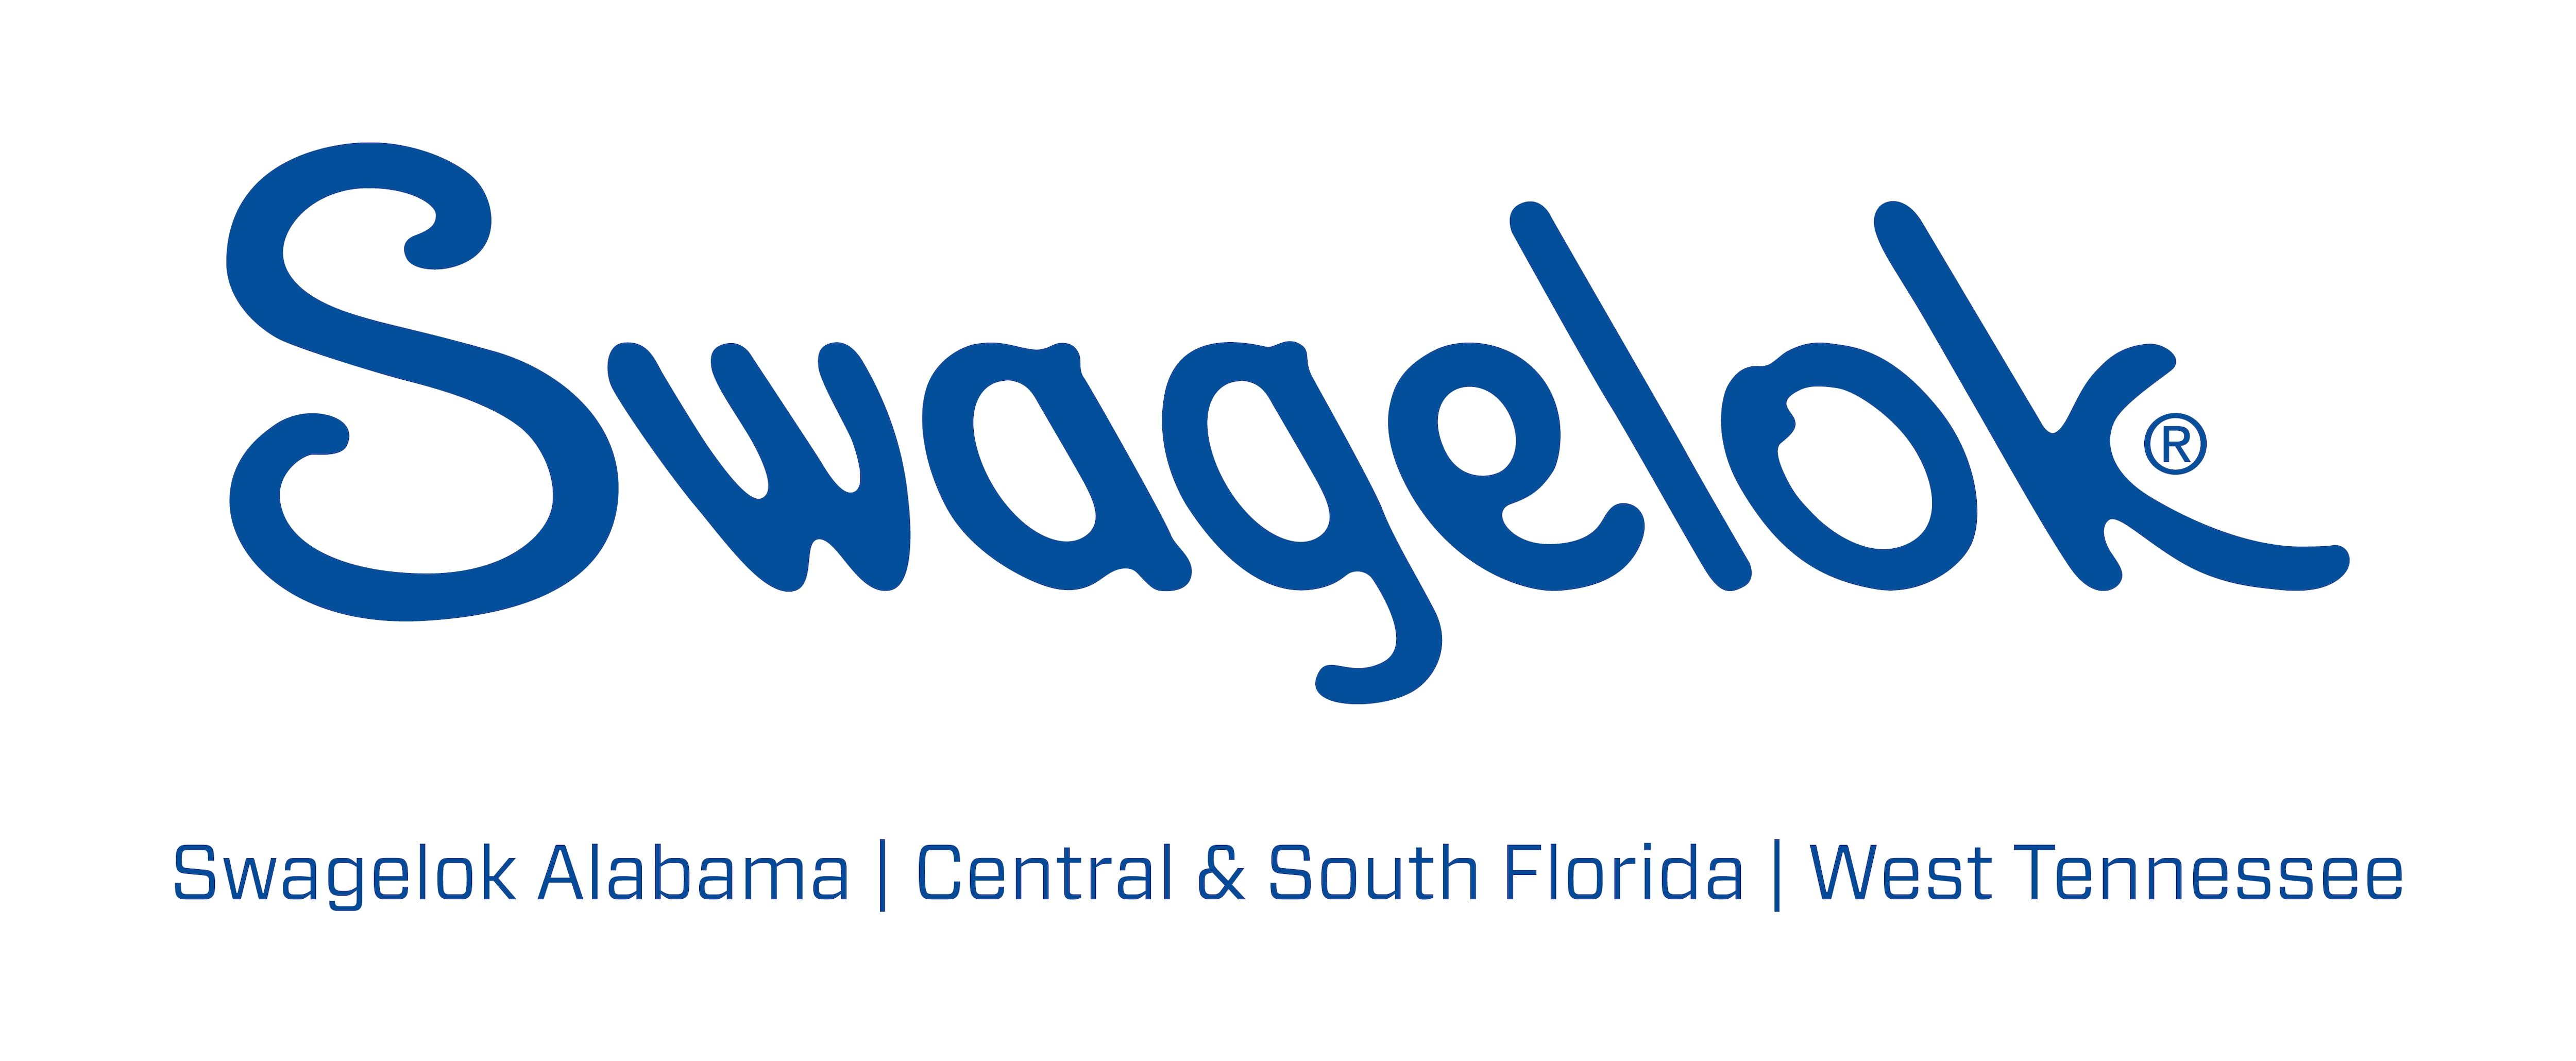 Swagelok Alabama | Central & South Florida | West Tennessee